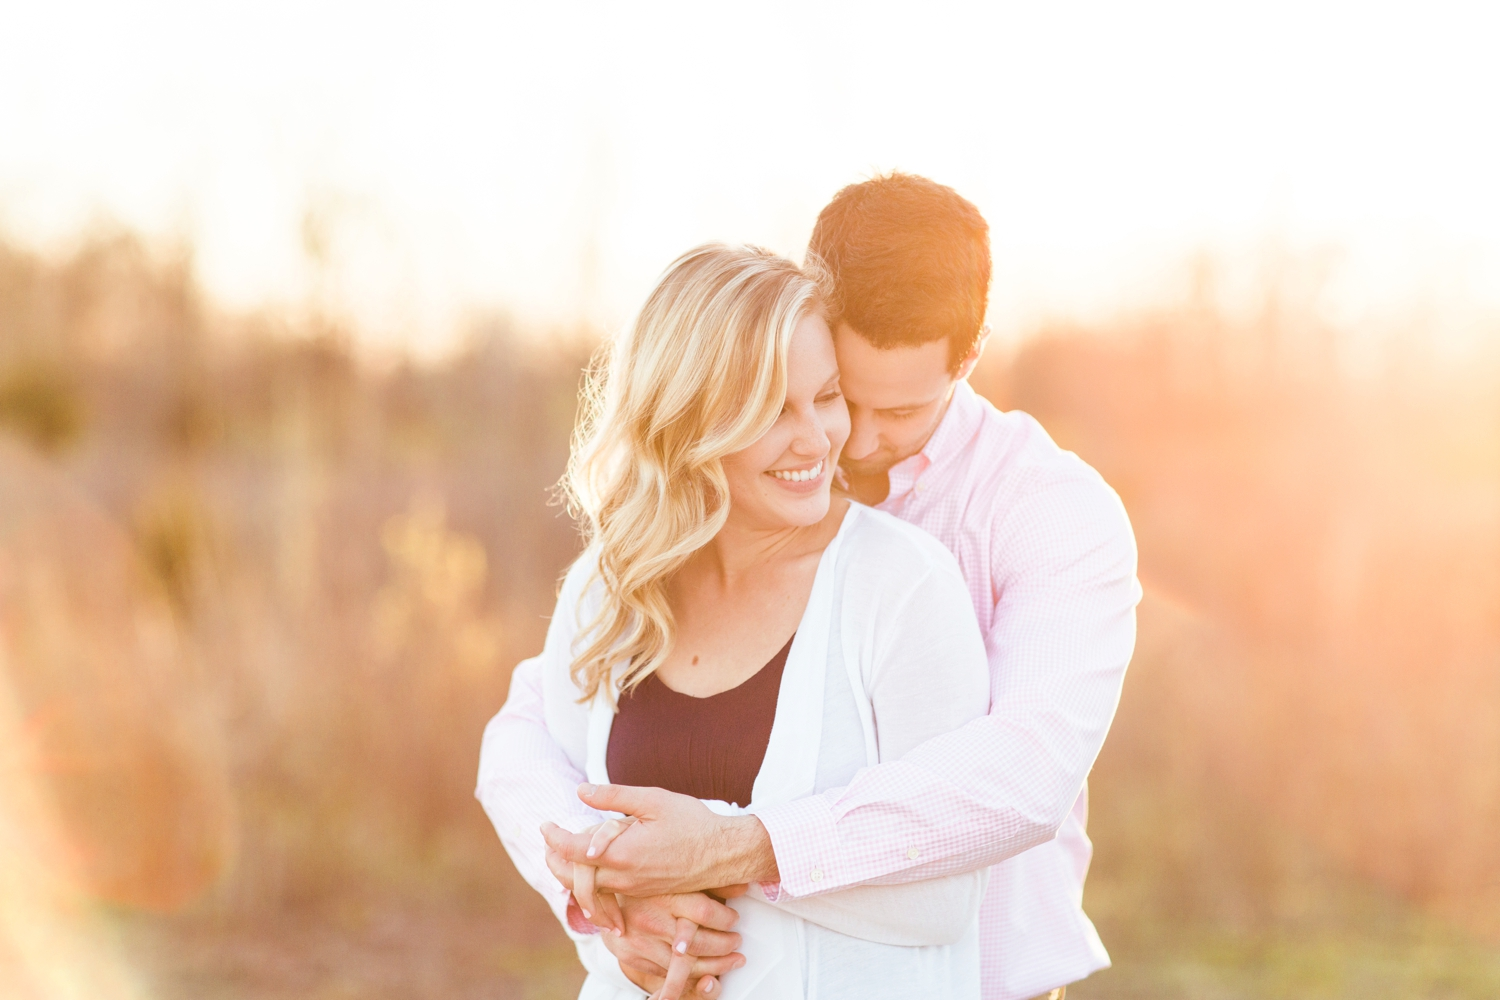 indianapolis_wedding_photographer_golden_hour_engagement_chloe_luka_photography_6136.jpg